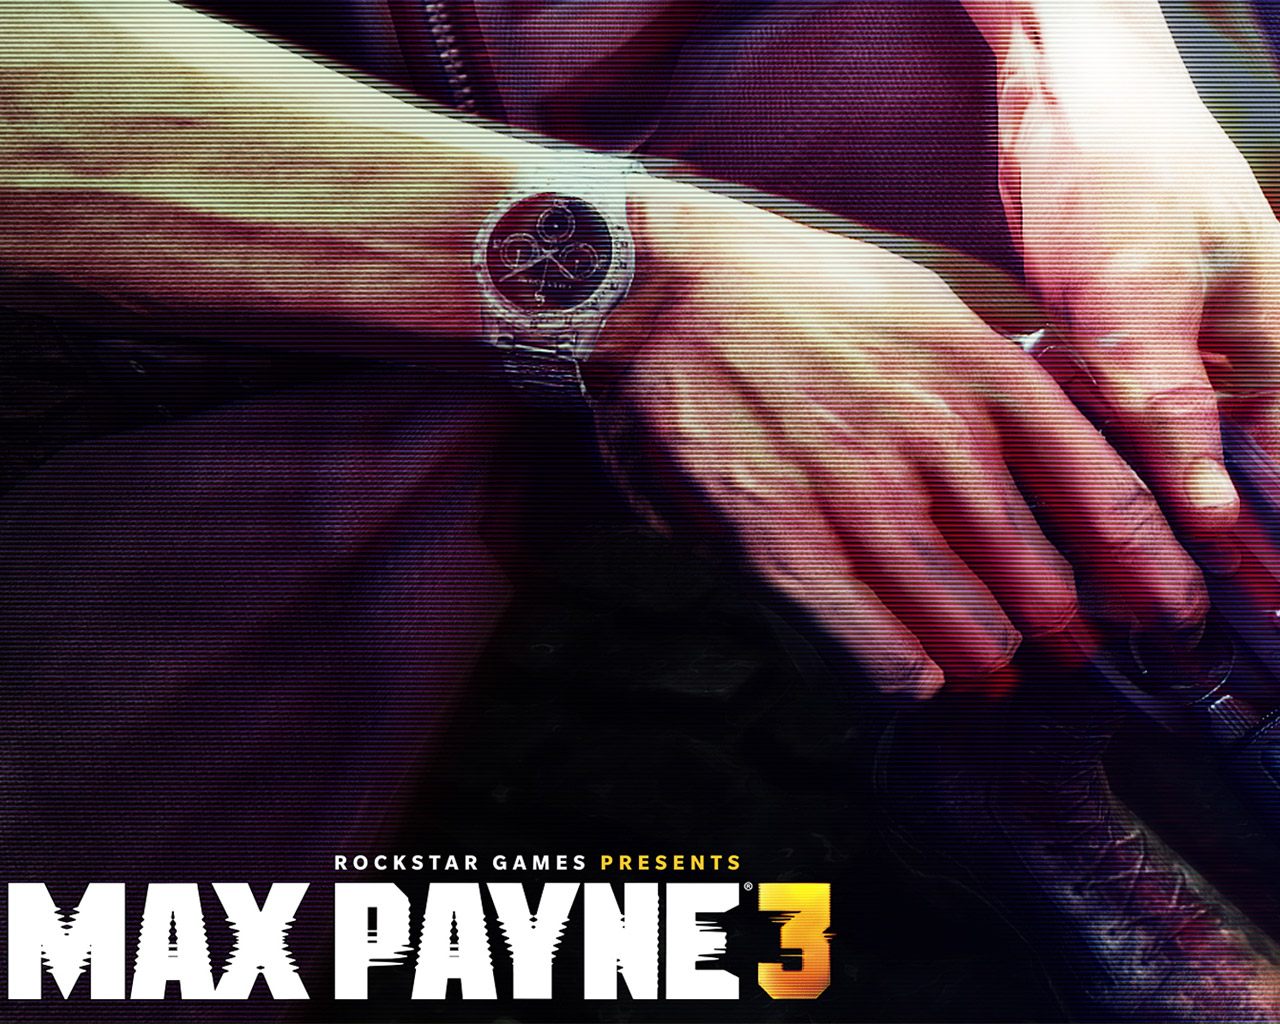 Max Payne 3 Wallpaper in 1280x1024